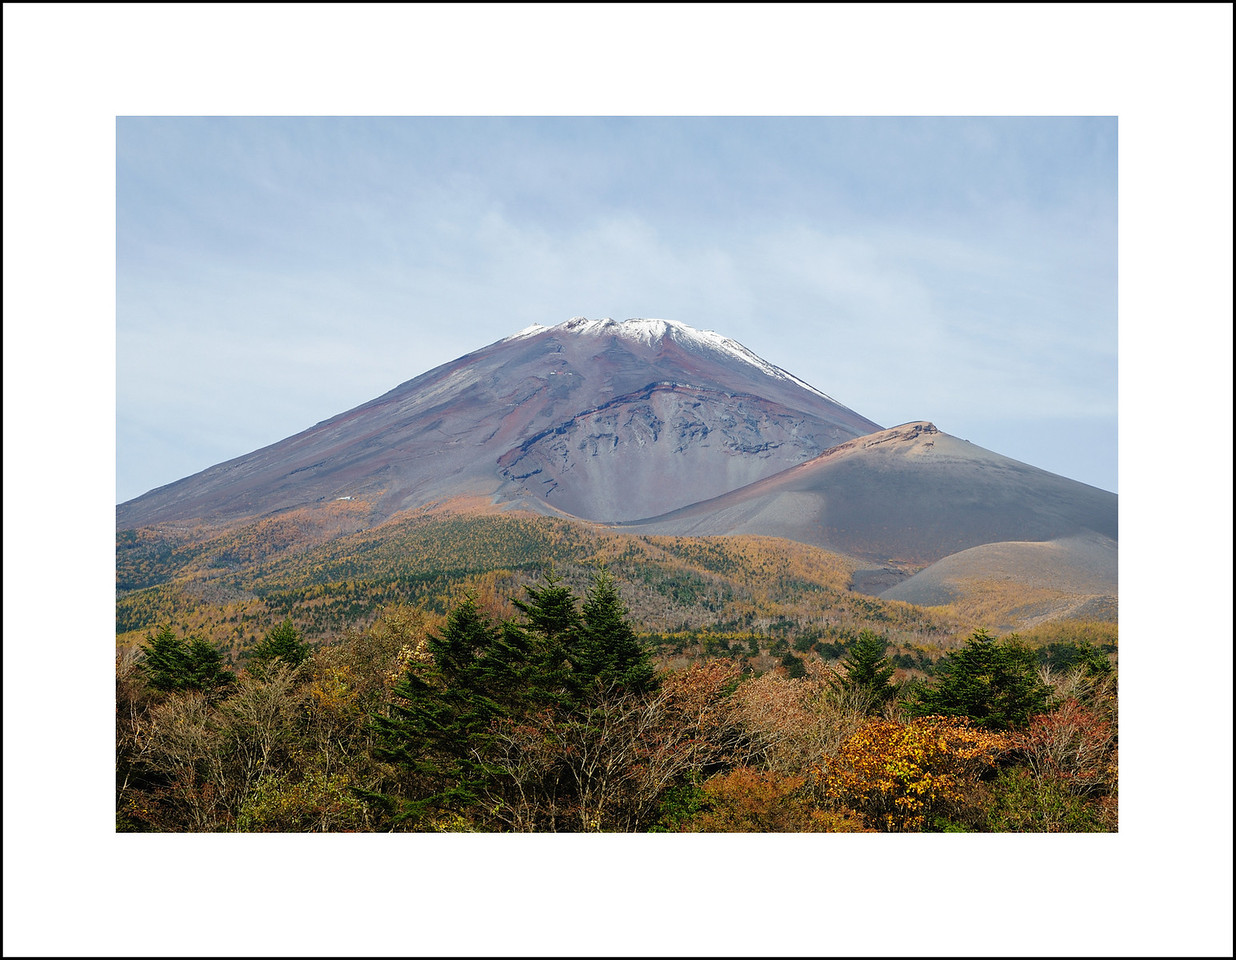 Day 306 Tuesday, November 2<br />  We left Monday evening for Hakone.  On tuesday we drove to the 5th station of Mt. Fuji and walked from there to the 6th station.  The trail was closed from there.  If you look closely, the small white building to the left of the crater marks the 6th station.